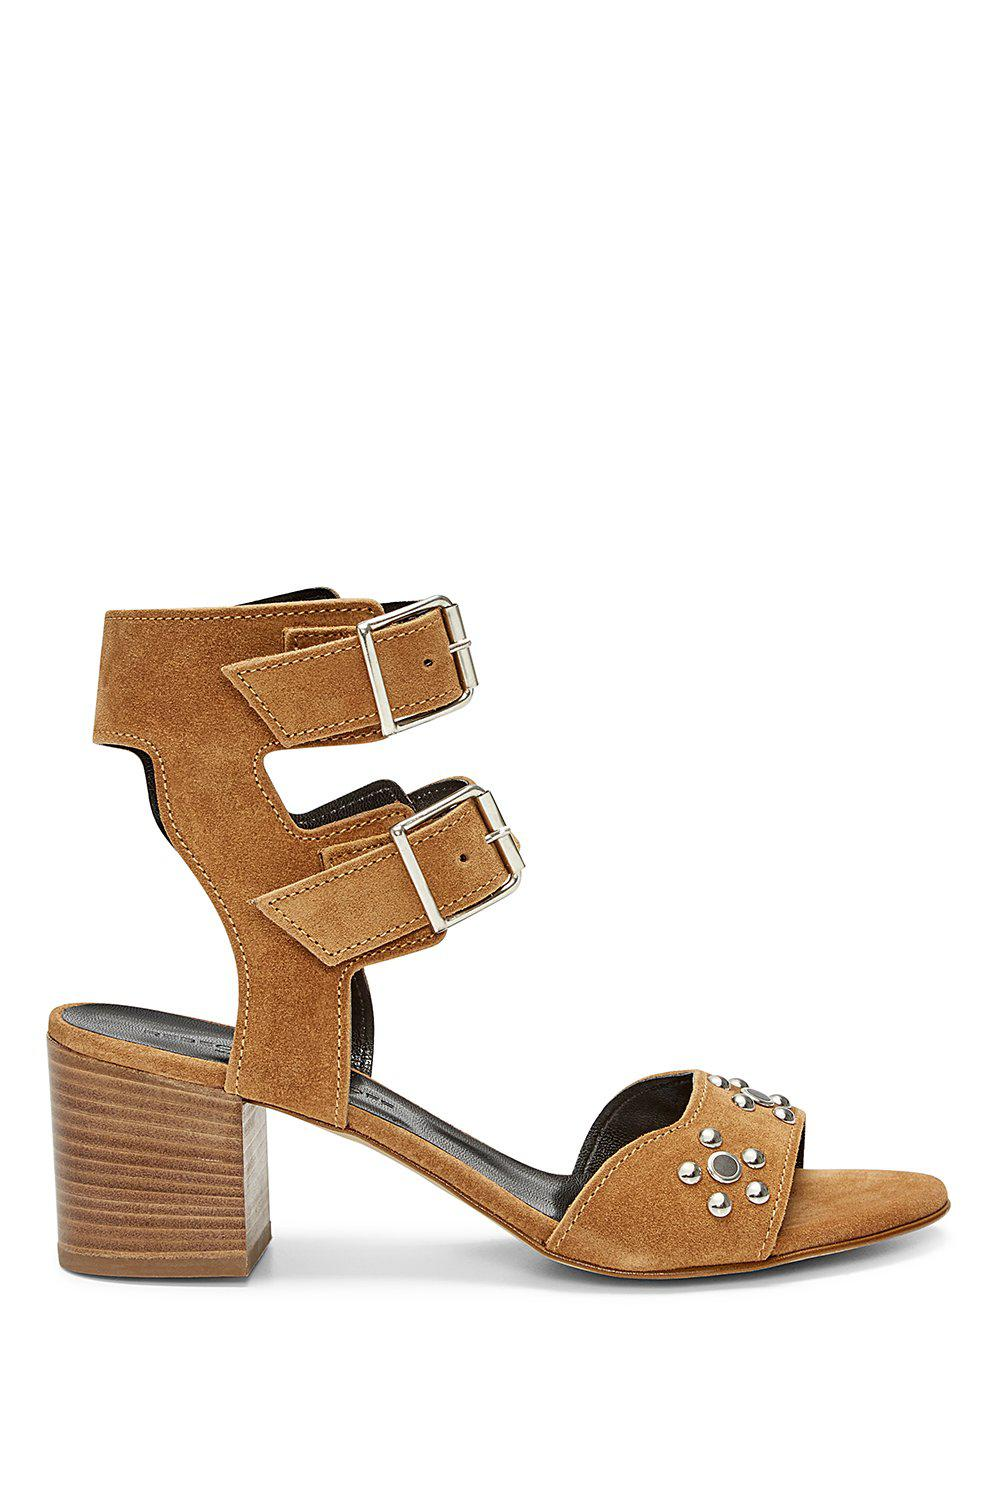 9915690a16cf Lyst - Rebecca Minkoff Sofia Sandal in Brown